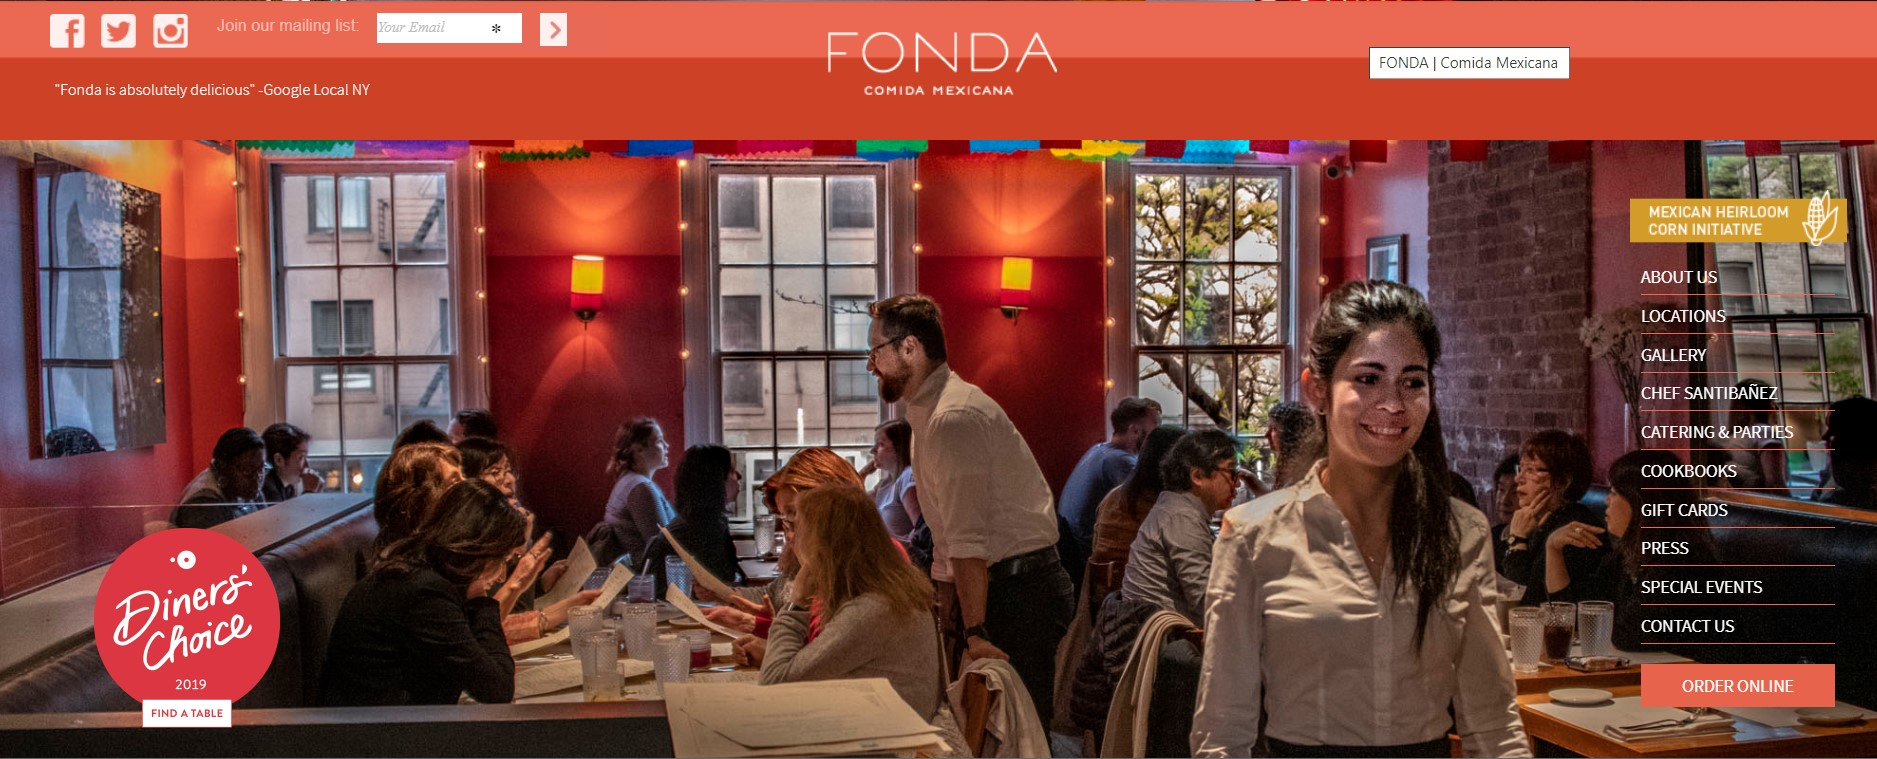 fonda mexican restaurant in new york